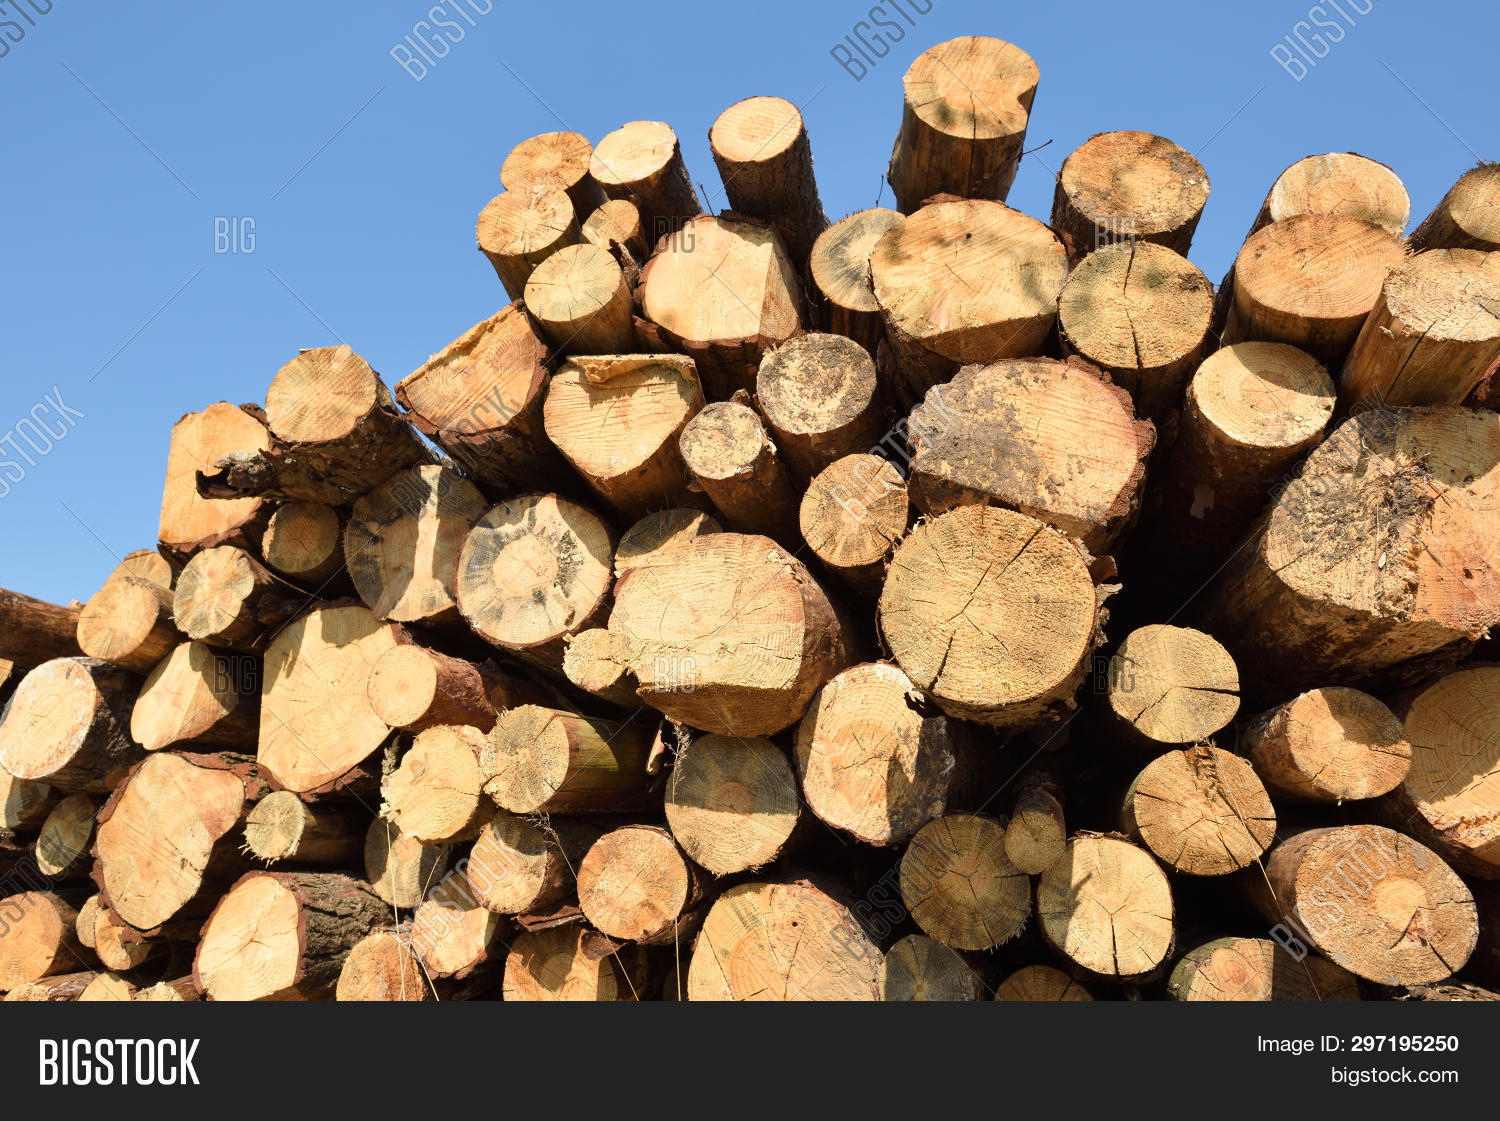 wooden logs timber image